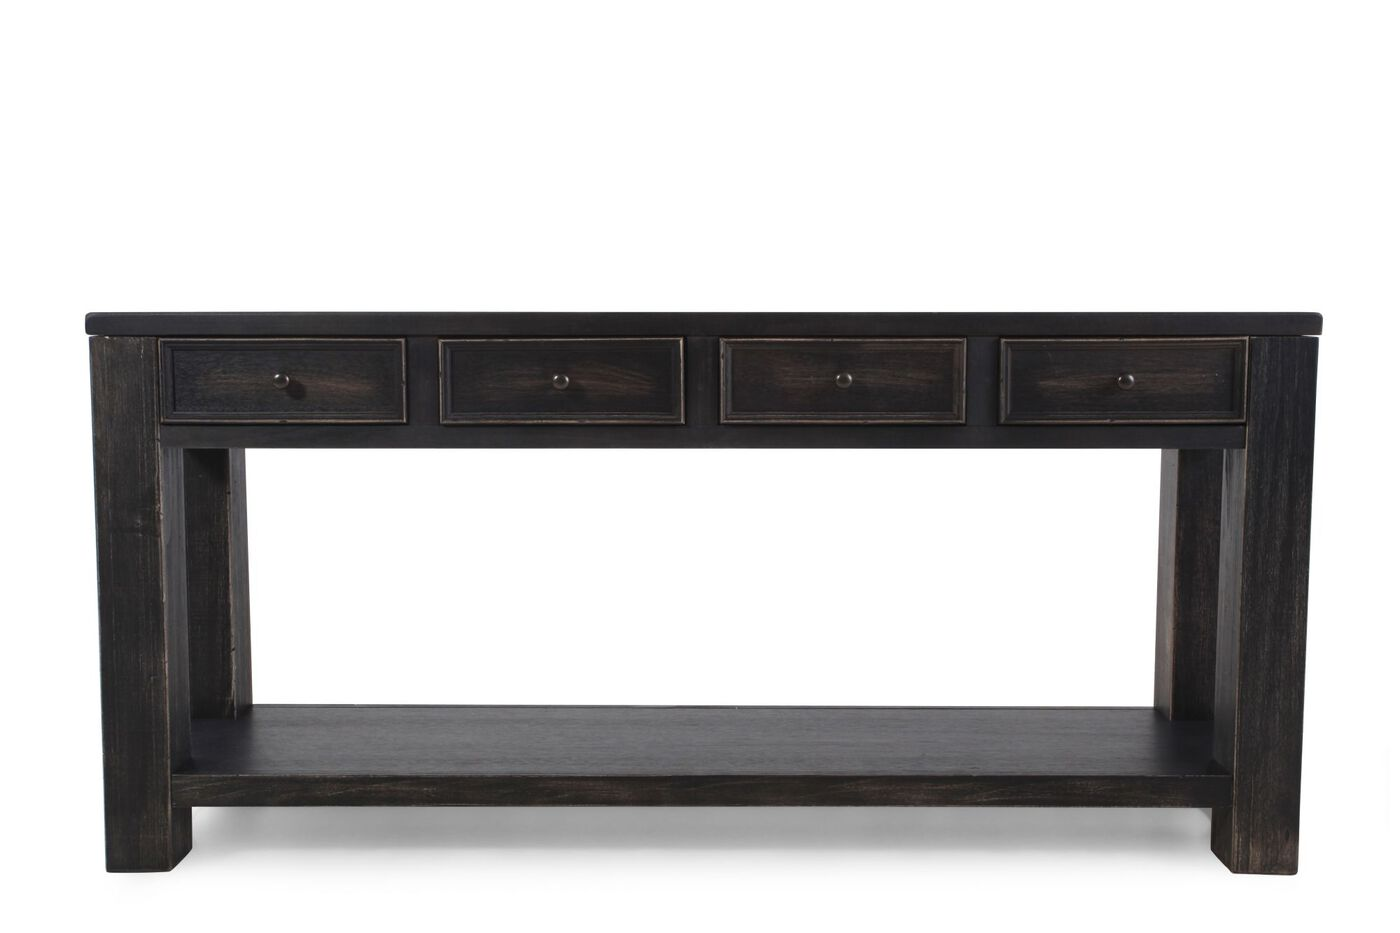 Ashley gavelston sofa table mathis brothers furniture for Sofa table vs console table